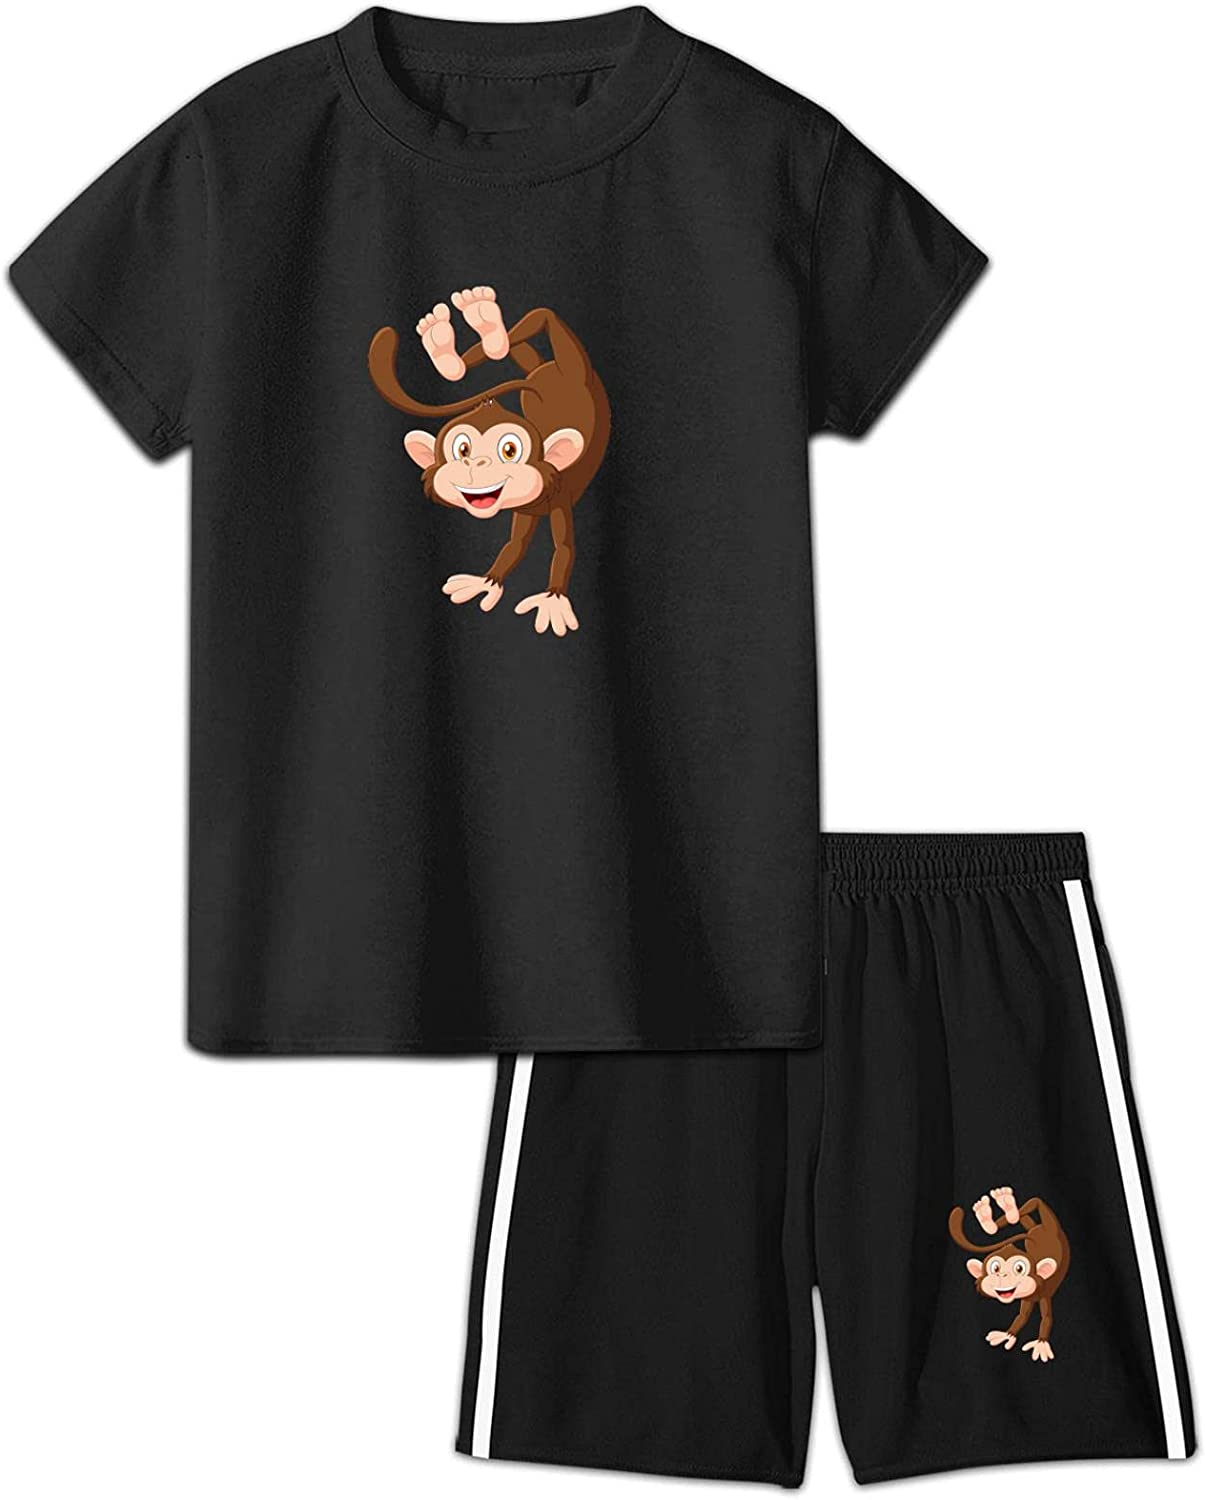 CAPINER Boys Girls Cartoon Cute Monkey Cotton Short T-Shirt Shorts Suit,3D Printed Youth 2 Pieces Athletic Jogger Outfits